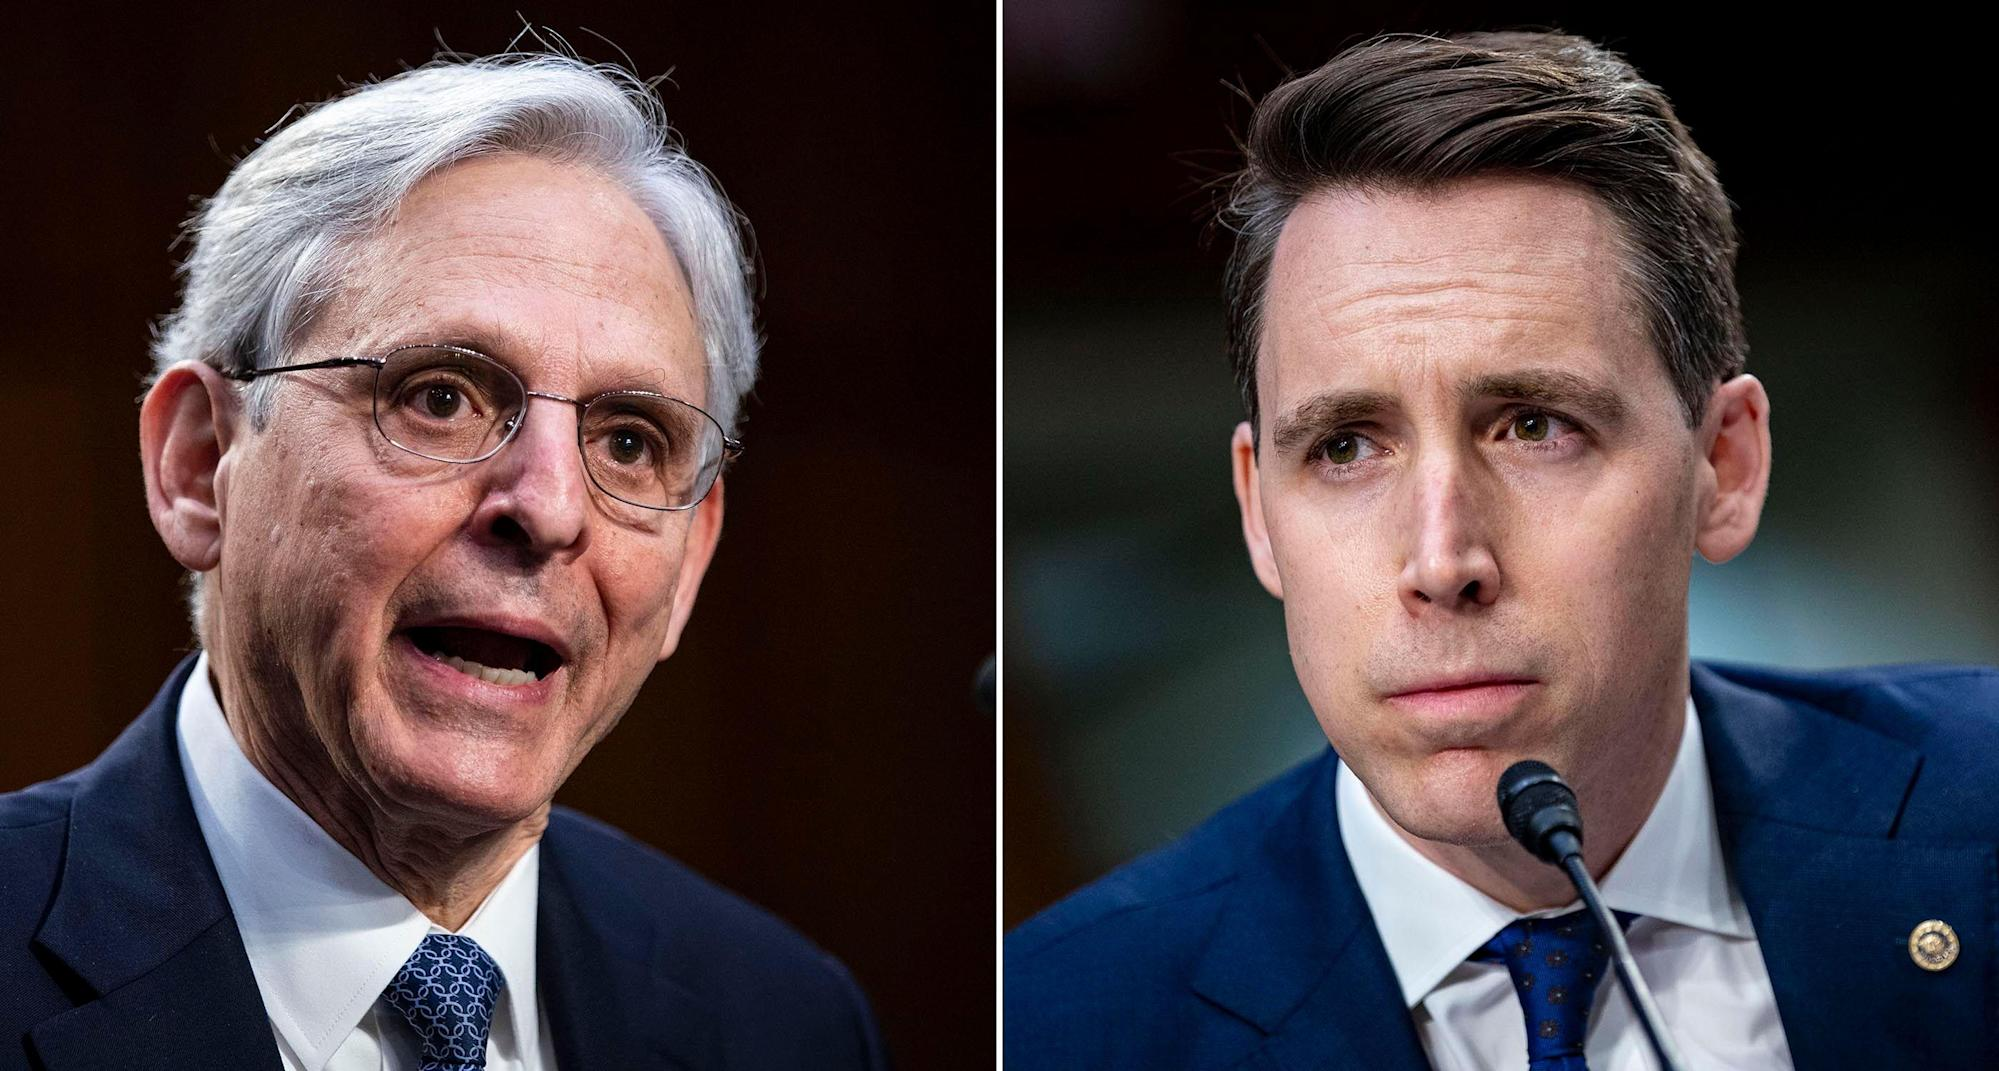 Merrick Garland Subtly Rebukes Josh Hawley After Question On Supporting Police